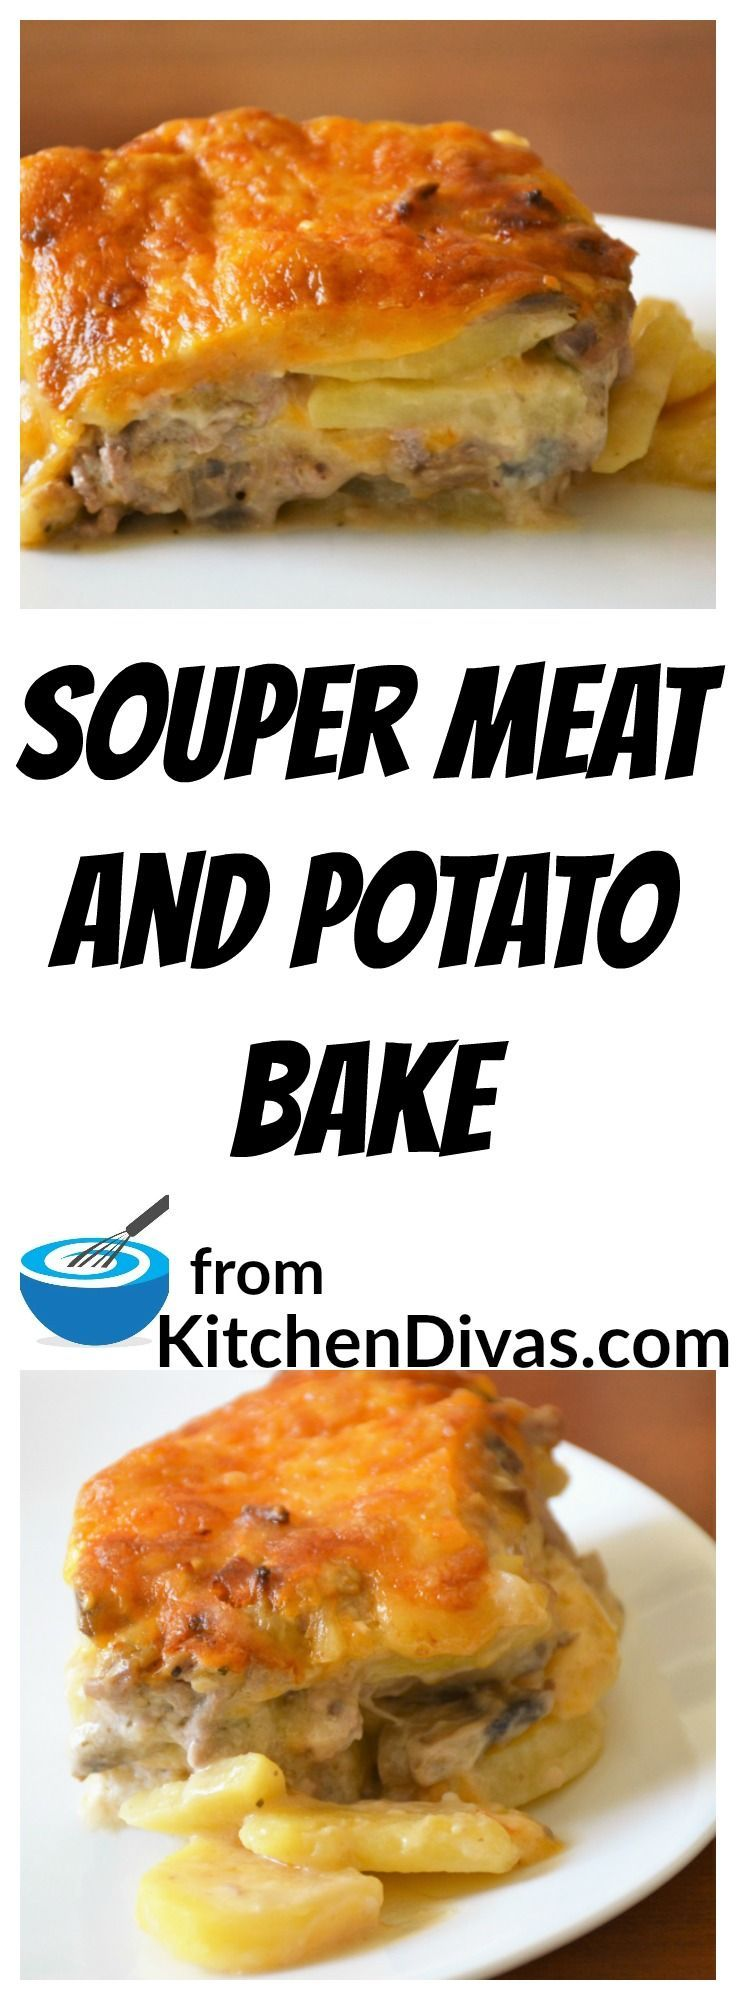 This Souper Meat and Potato Bake is one of my guilty pleasures.   It tastes so good no matter which meat I happen to use to make it.   I love the taste of the sauce with the potatoes.  This Souper Meat and Potato Bake tastes absolutely delicious.  #recipe #casserole #potato #food #foodidea